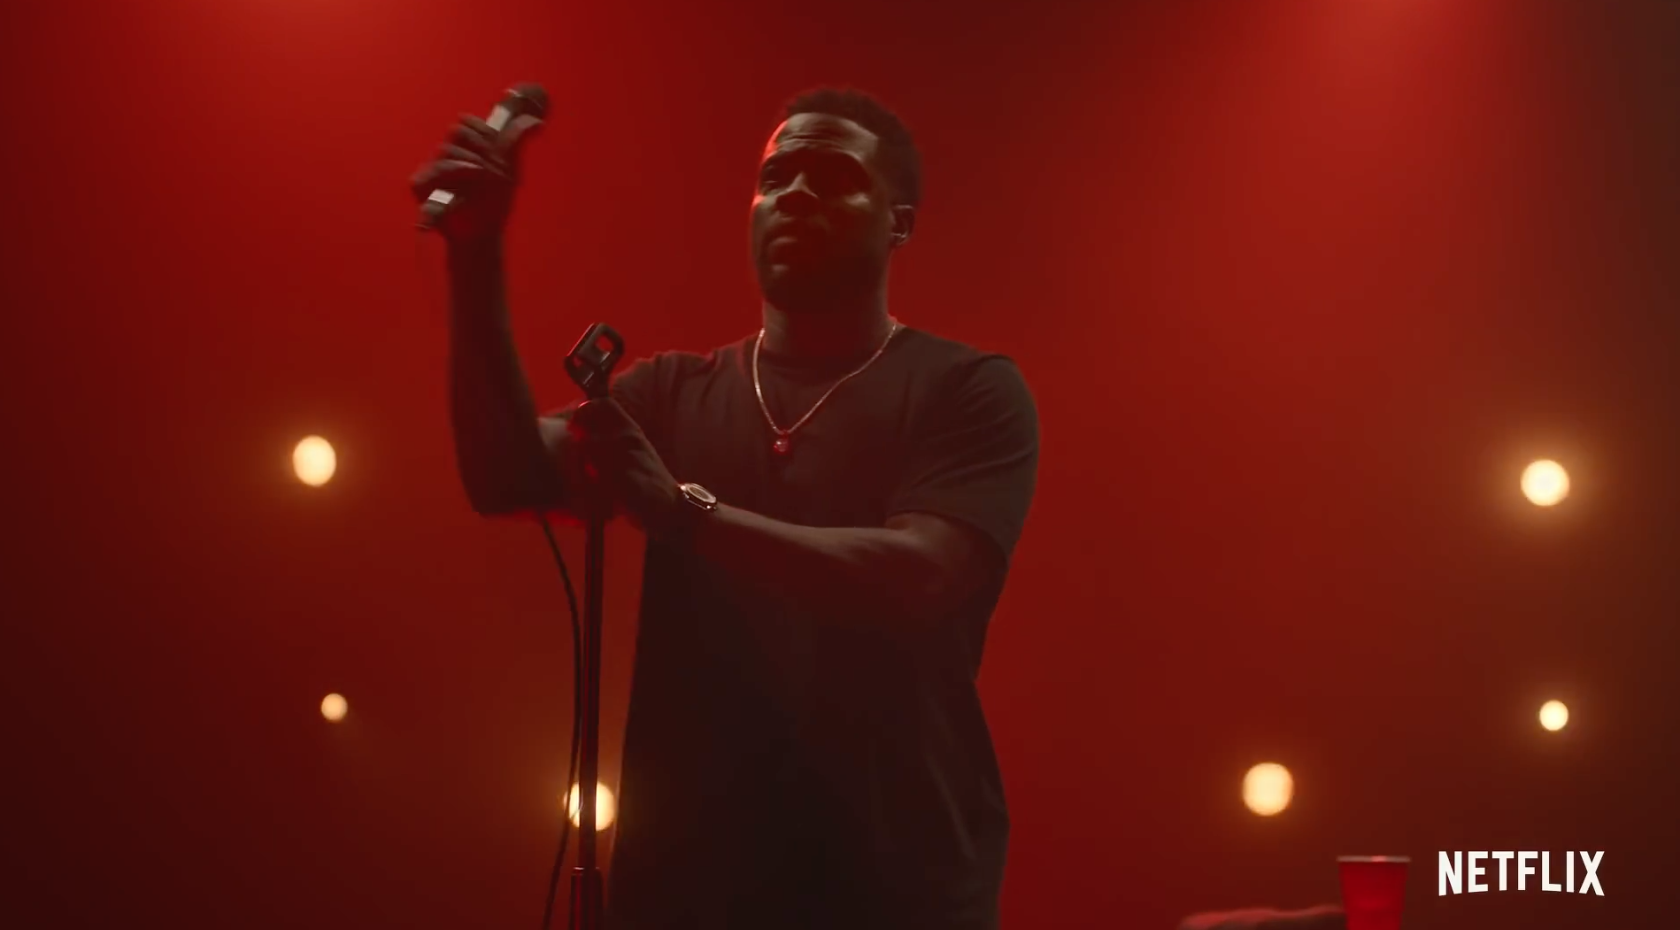 Kevin Hart Addresses Backlash From Netflix Stand-Up Special on Clubhouse: 'I'm Not Calling My Daughter a Hoe'